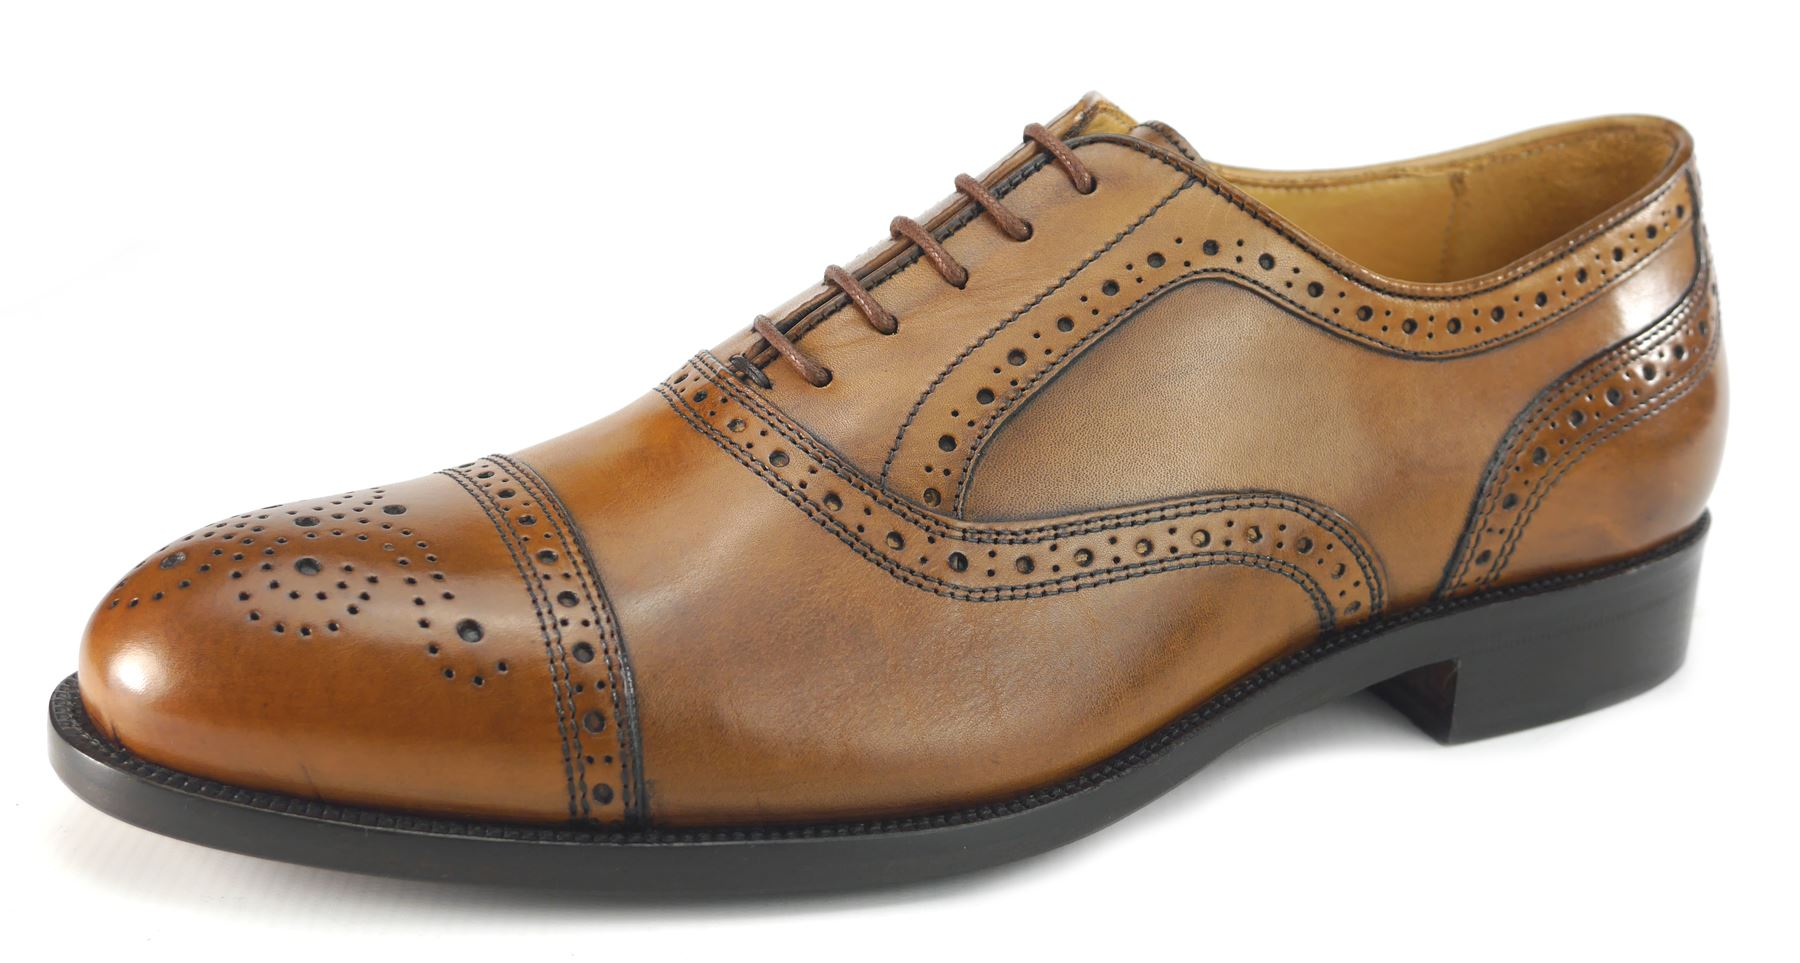 14360d260c3 Details about Mercanti Fiorentini Nairobi 7010 Leather Mens Brogue Lace Up  Cuoio